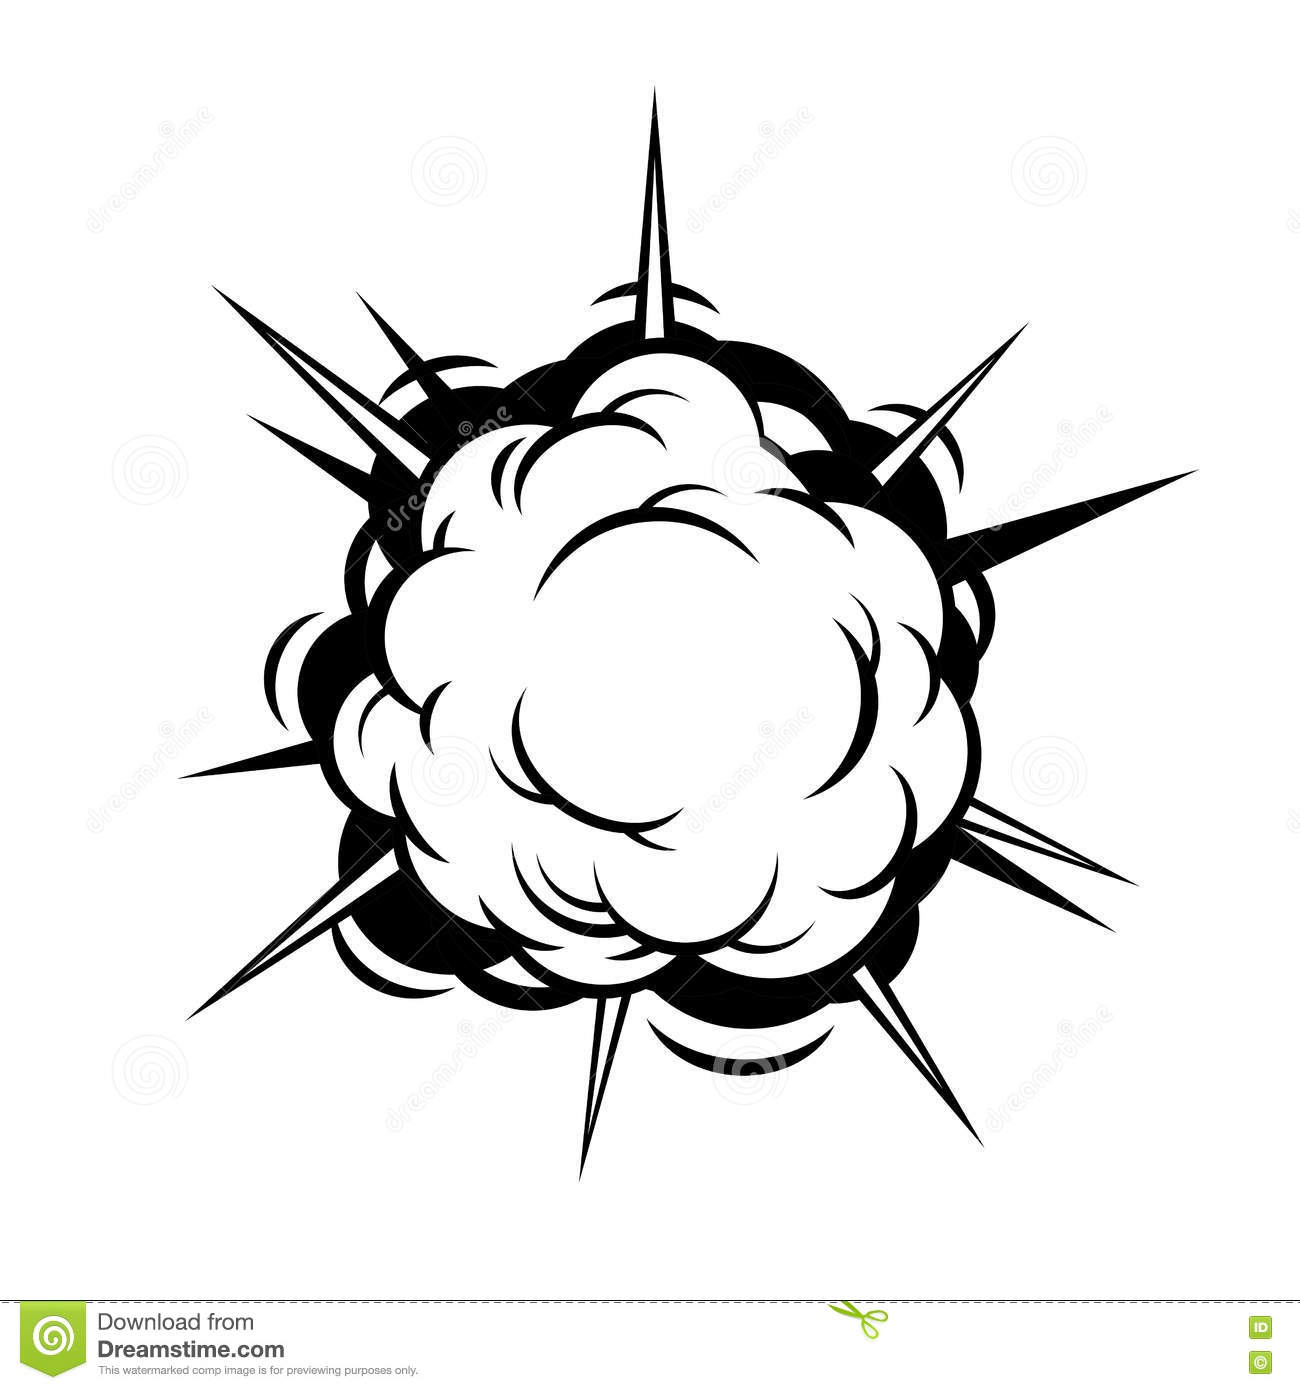 Comic Boom. Explosion. Vector Stock Vector - Image: 57268094